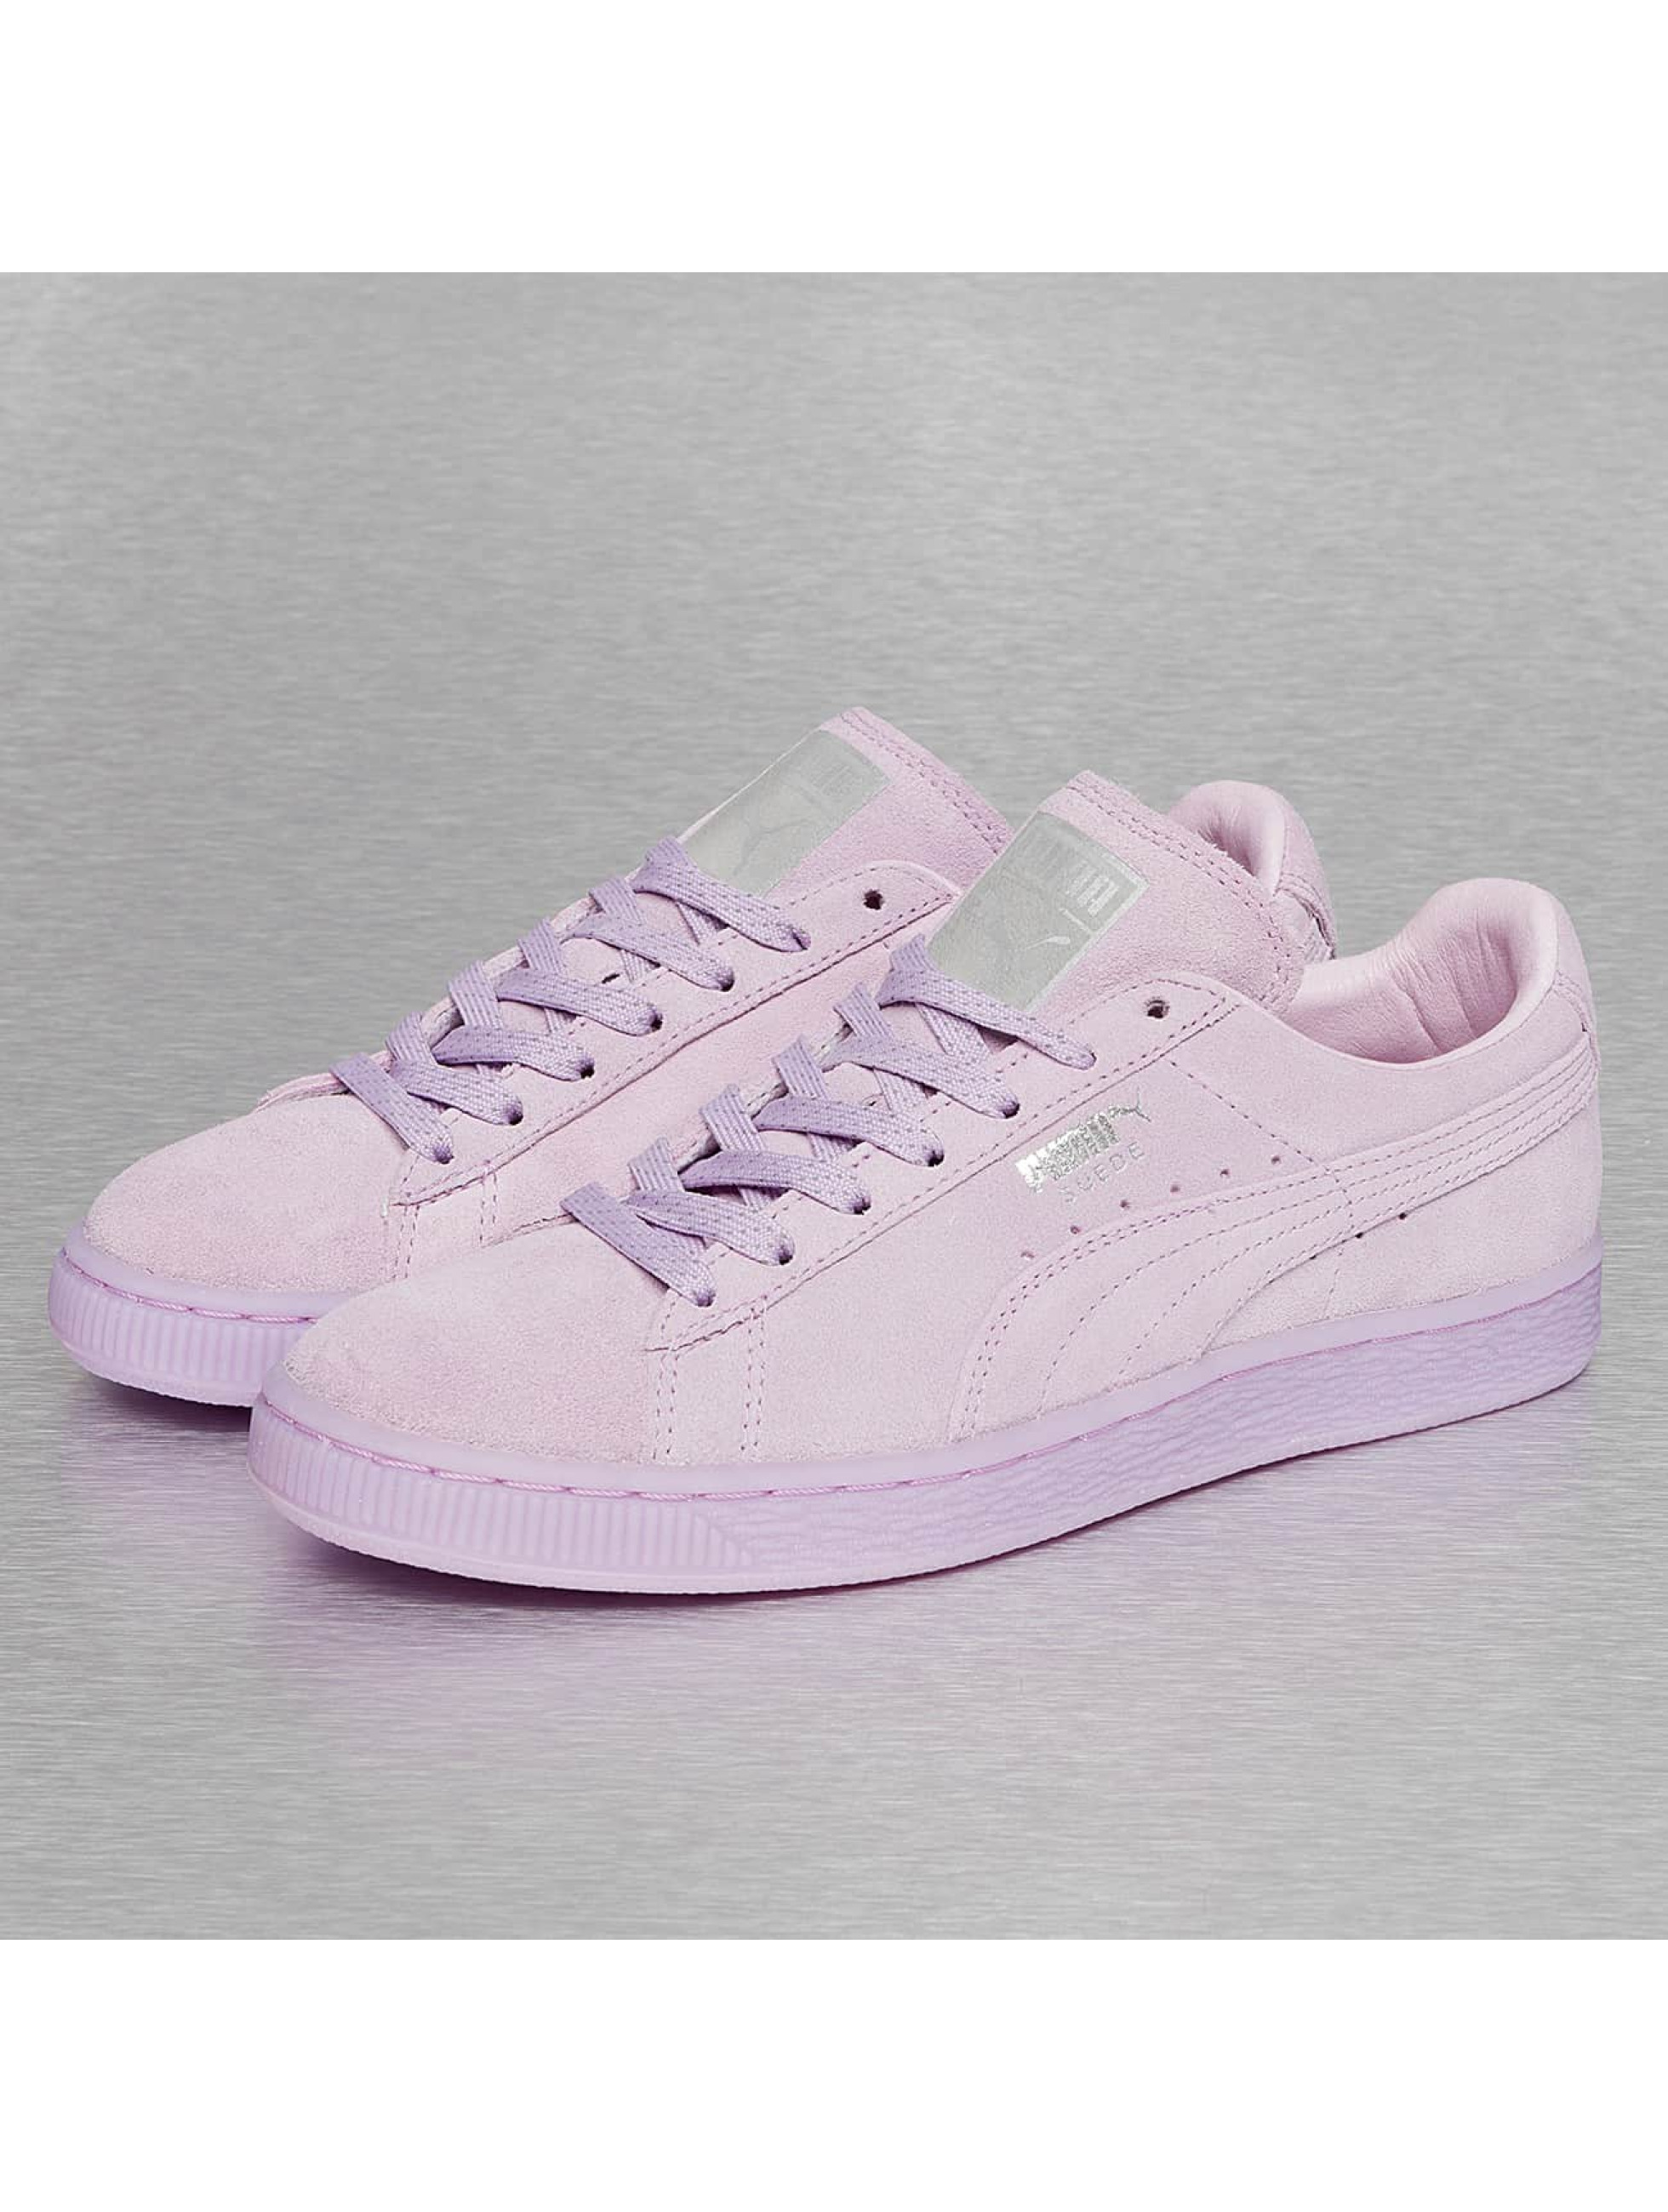 Sneaker Suede Classic Mono Ref Iced in violet